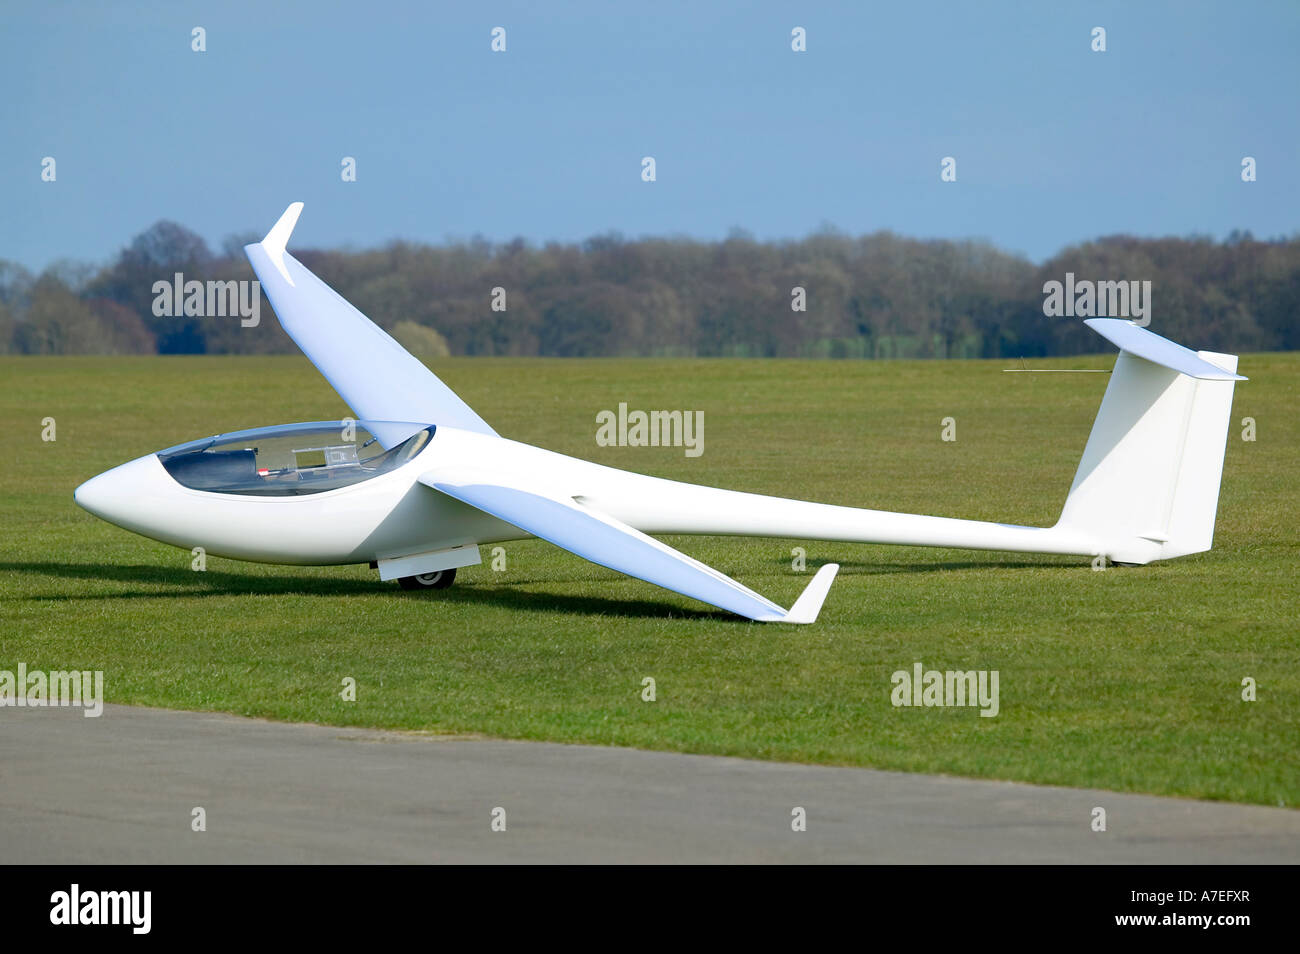 White Plane or Glider at rest on an airfield - Stock Image